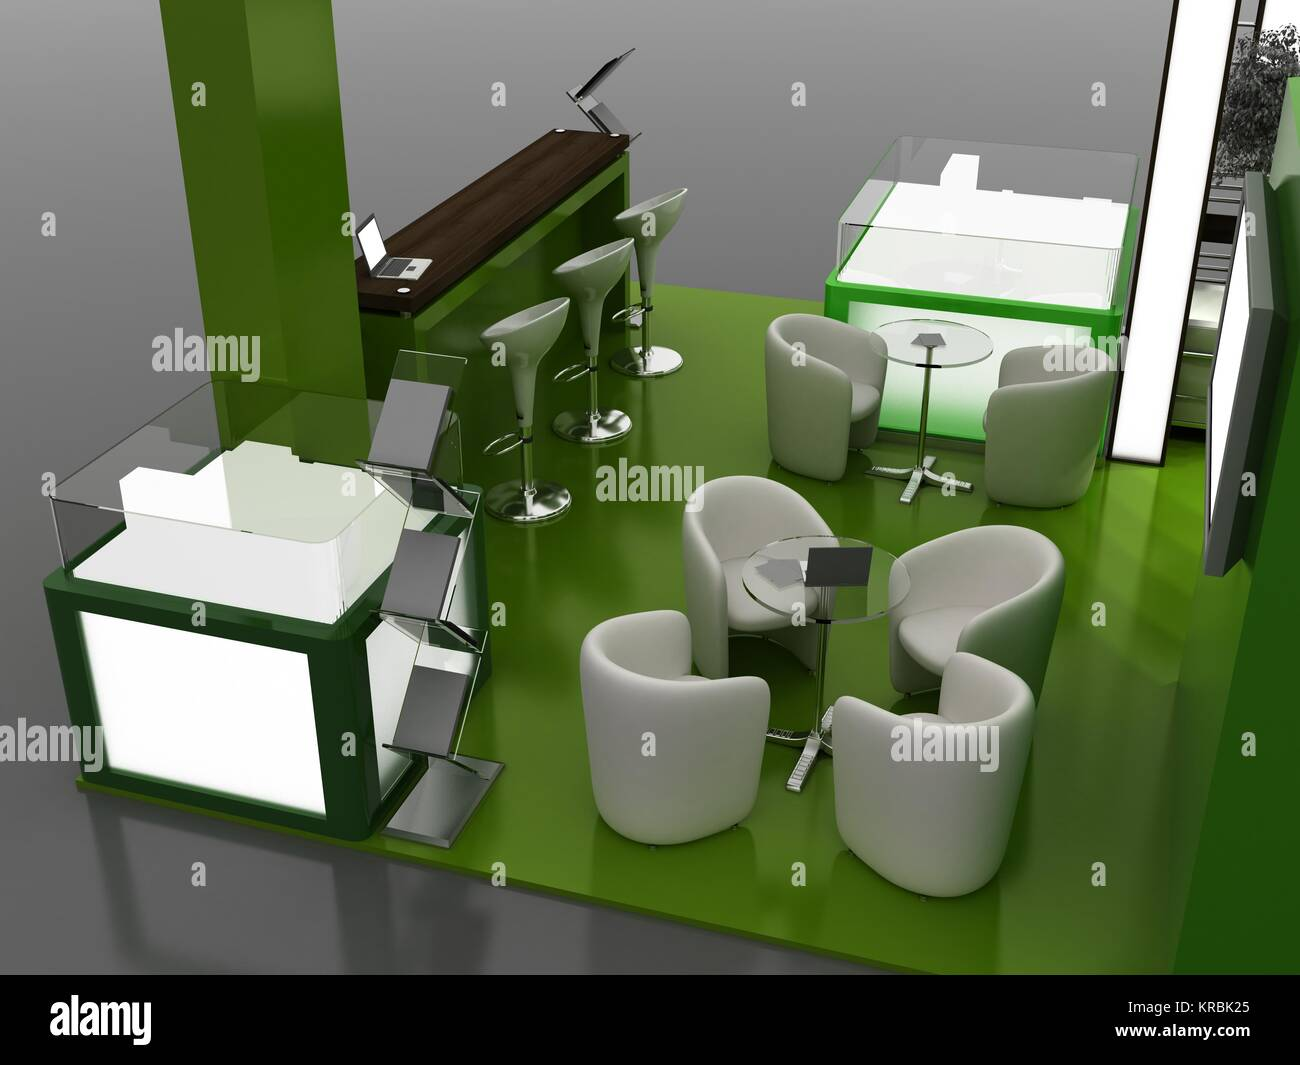 Exhibition Stand Interiors : Exhibition stand interior sample interiors stock photos